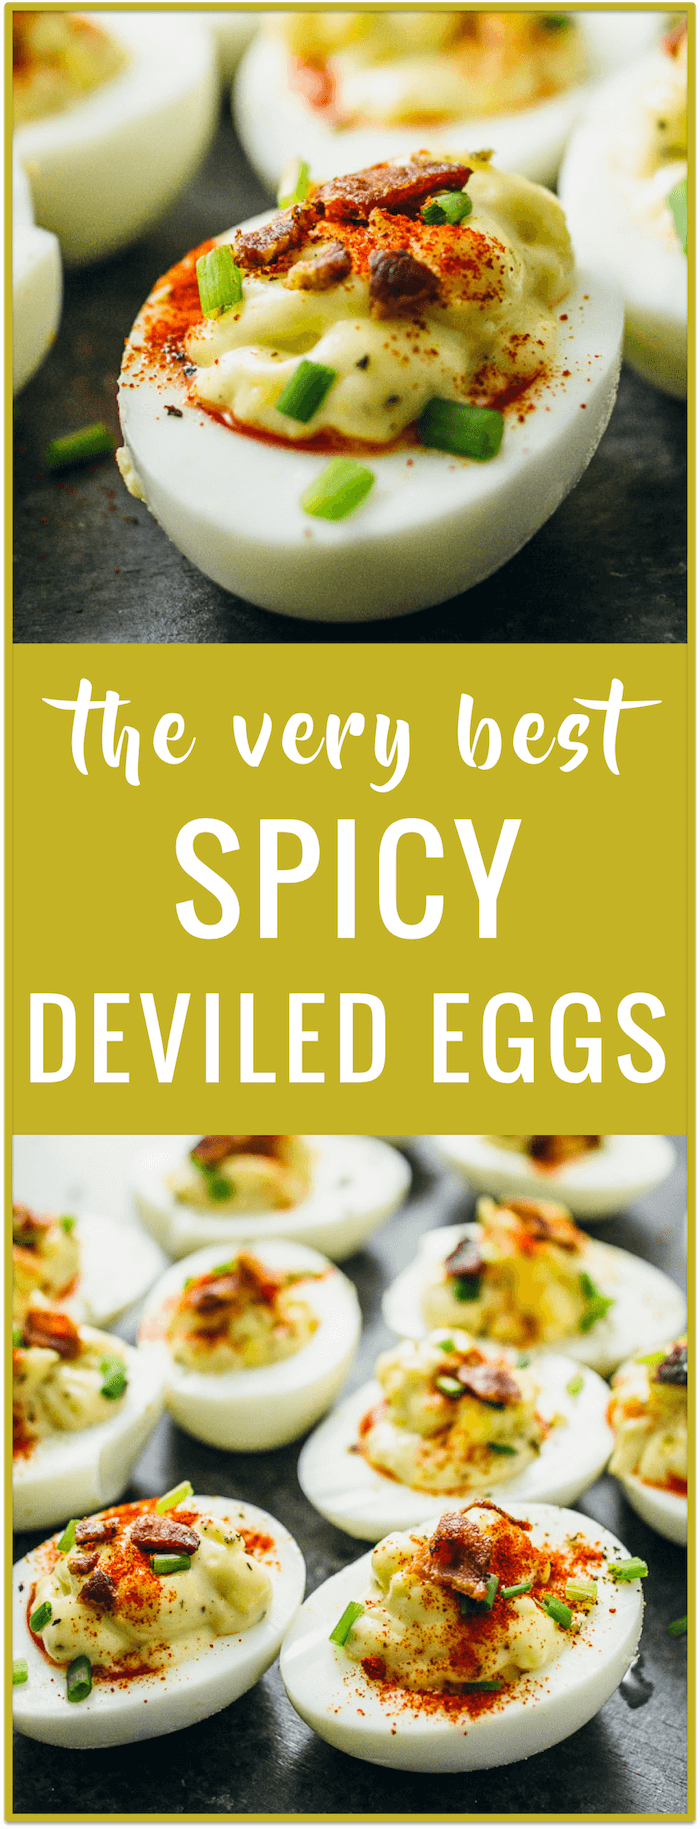 Spicy deviled eggs recipe | Party food | Easter food | Appetizer food | Easy recipe | Stuffed eggs | Angel eggs | Dressed eggs | Salad eggs | best deviled eggs